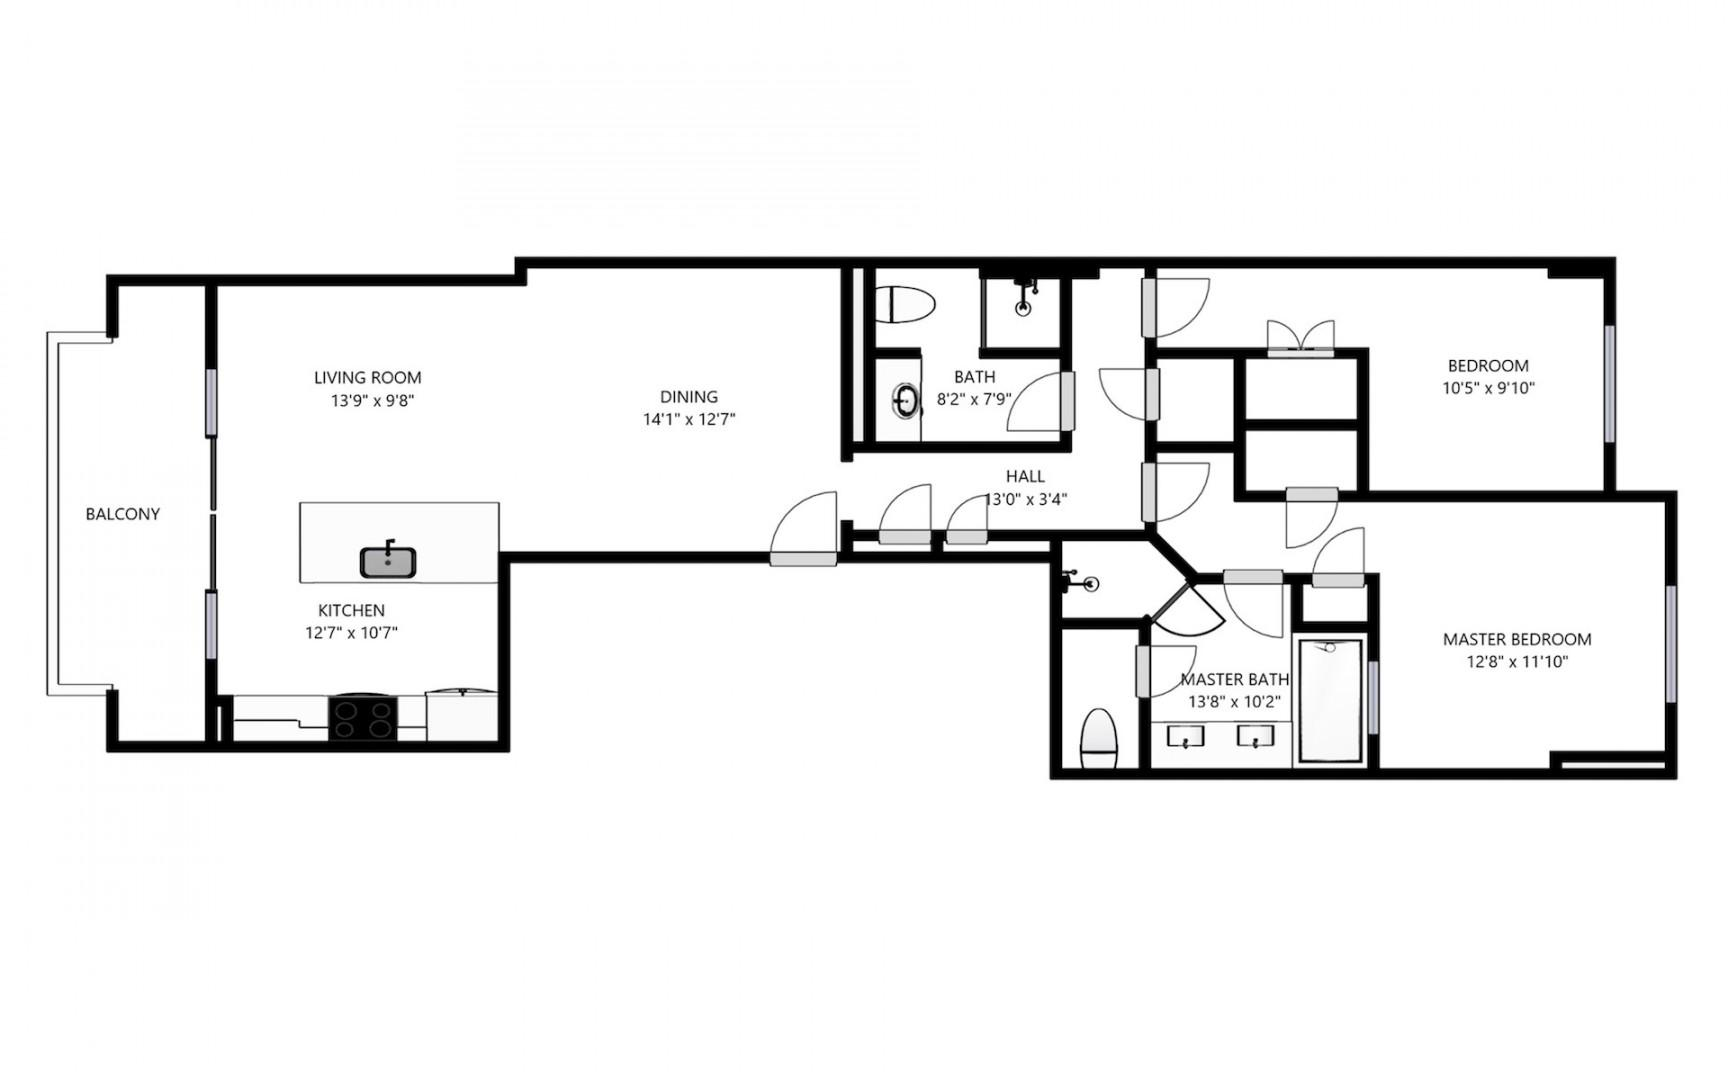 Floor plan overview with lanai facing west and bedroom windows facing east